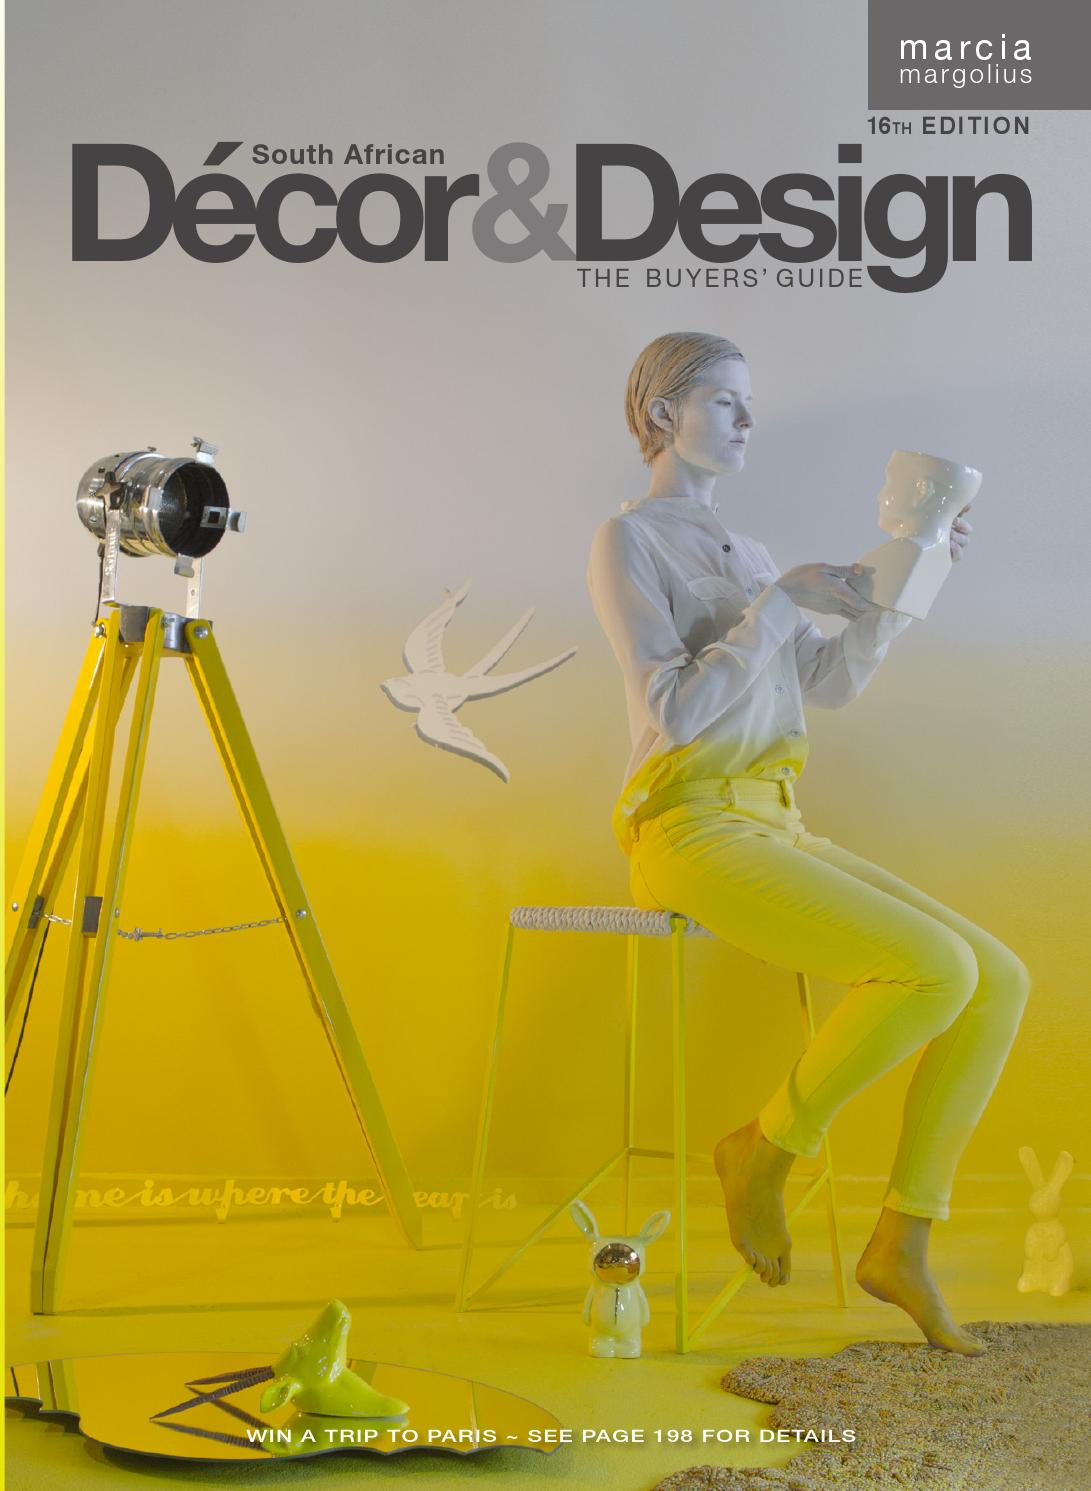 the buyers guide 17th edition by sa decor design issuu